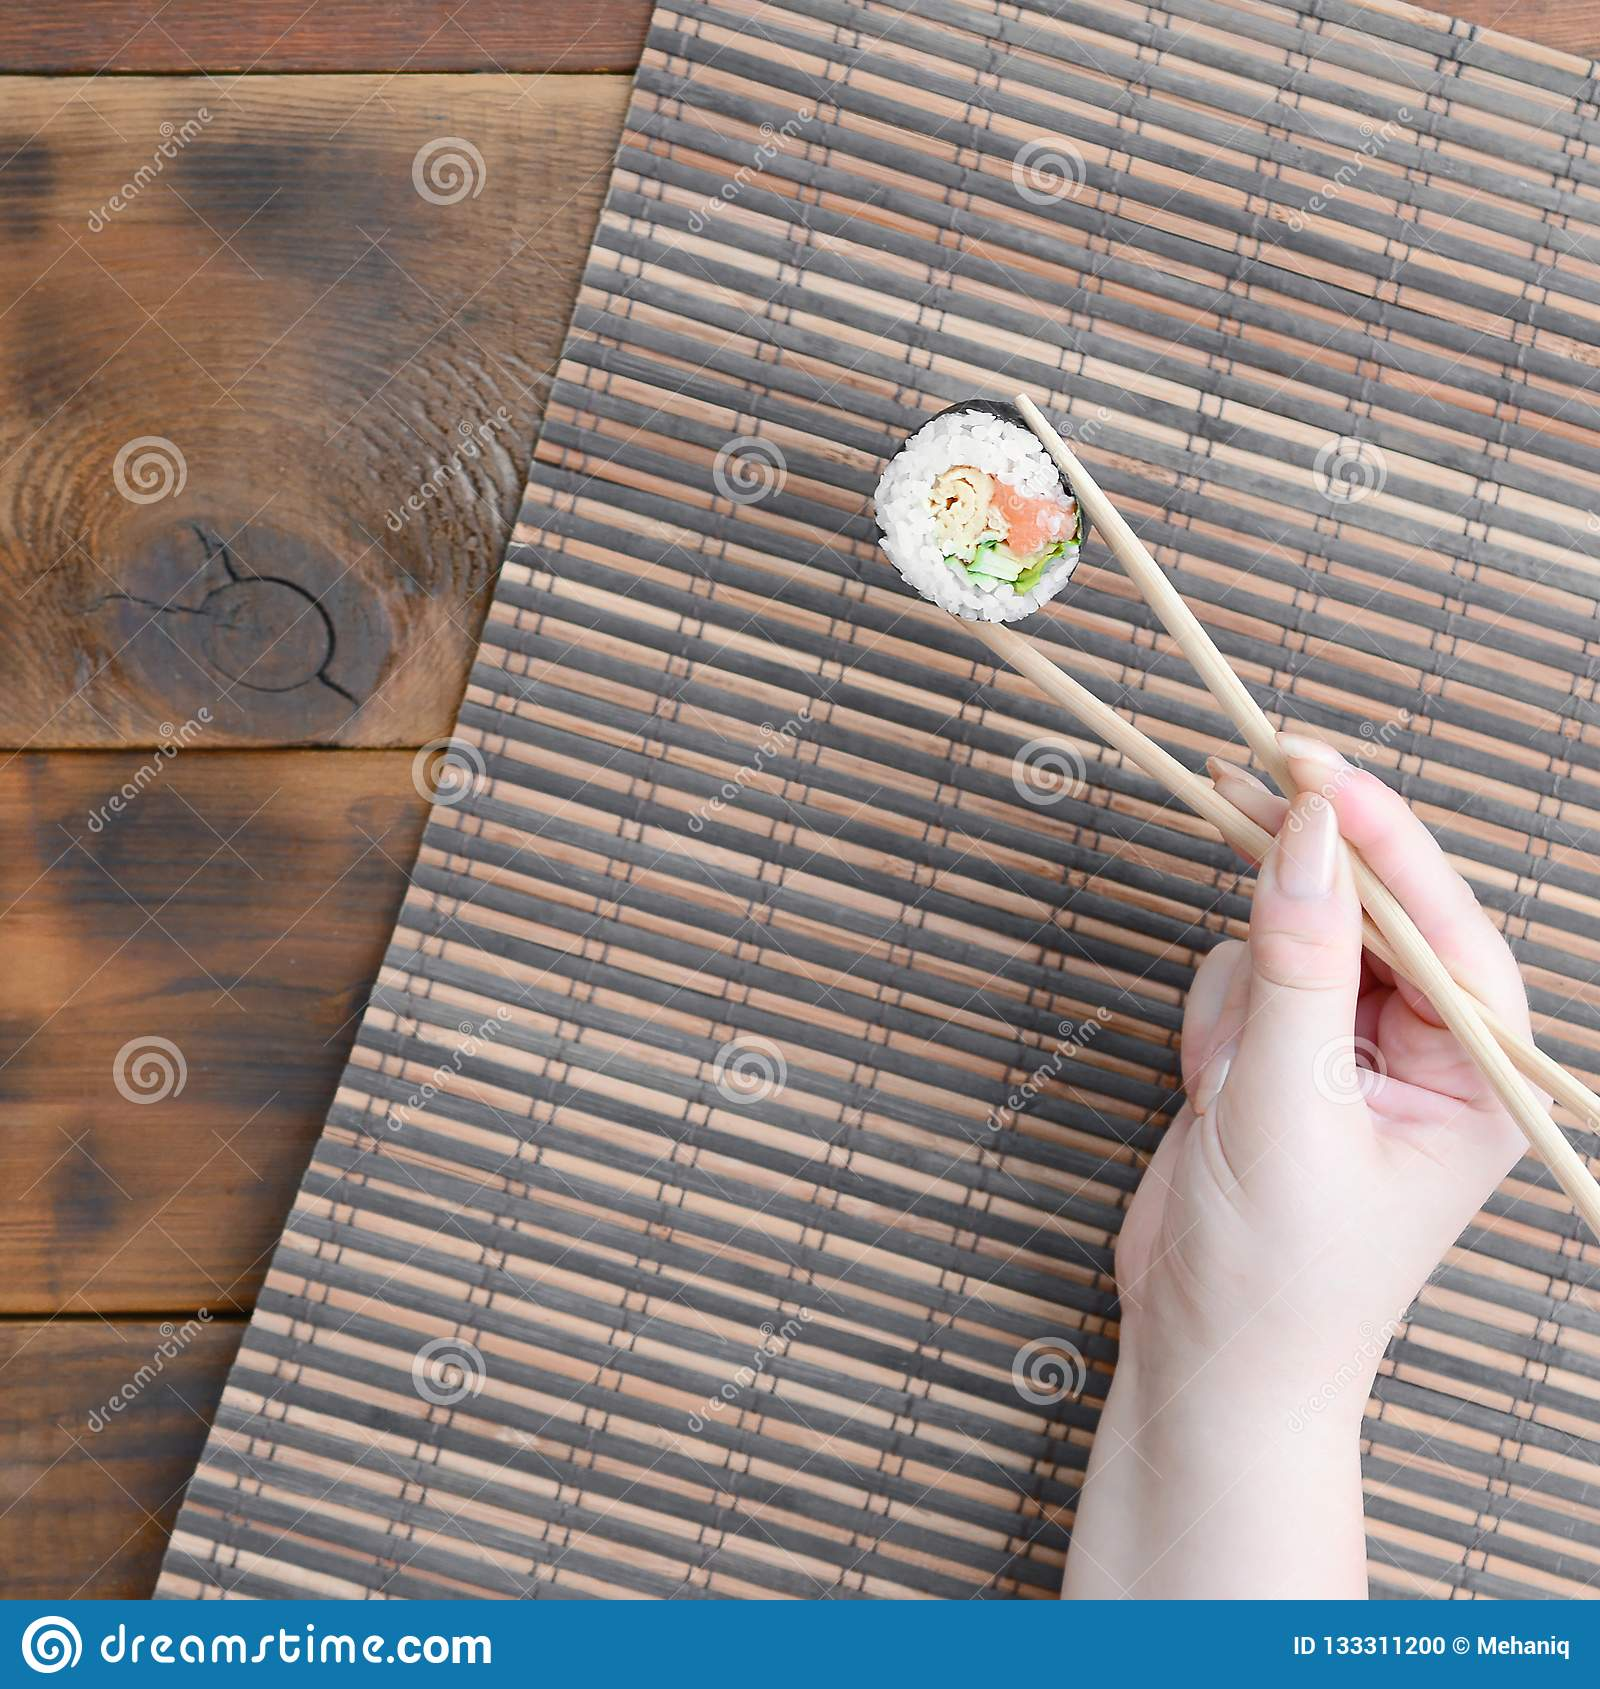 A hand with chopsticks holds a sushi roll on a bamboo straw serwing mat background. Traditional Asian food